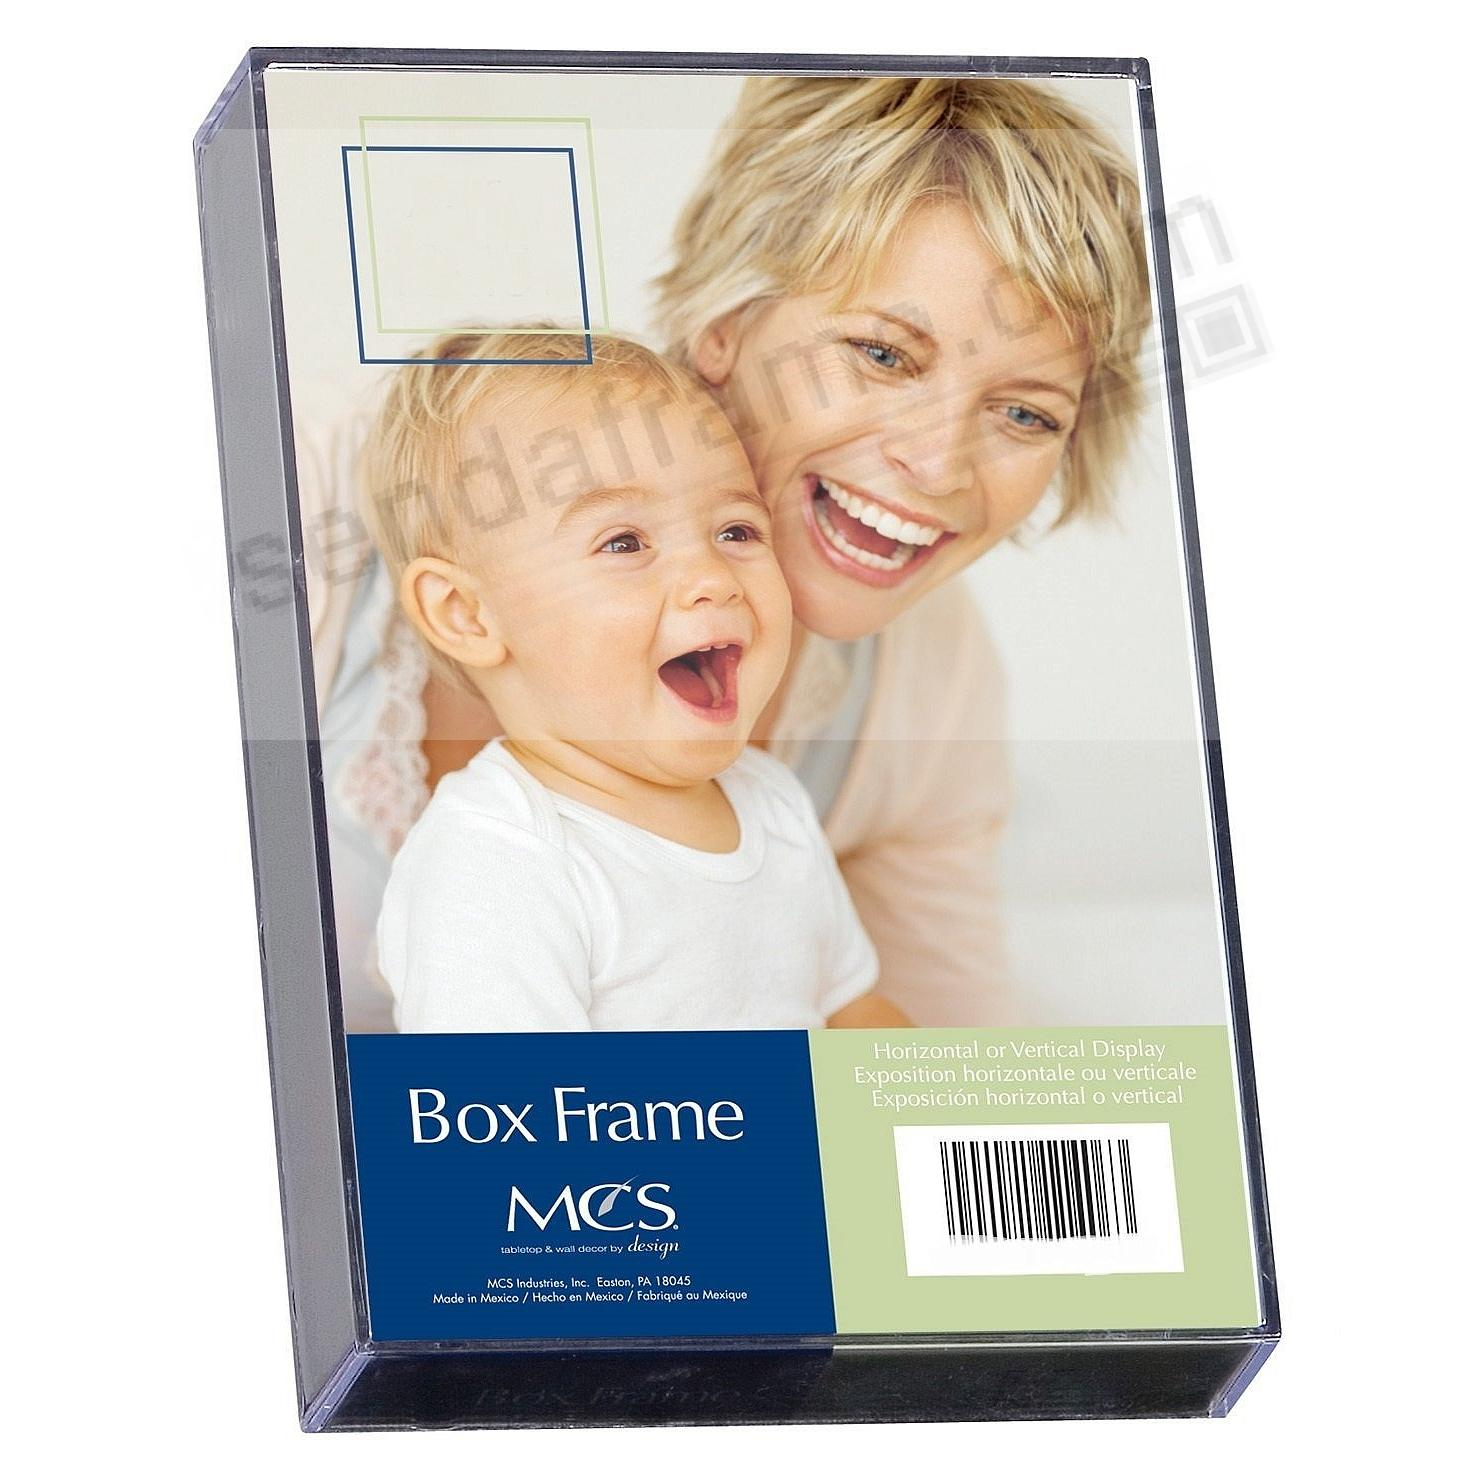 The Acrylic BOX frame in 4x6 size